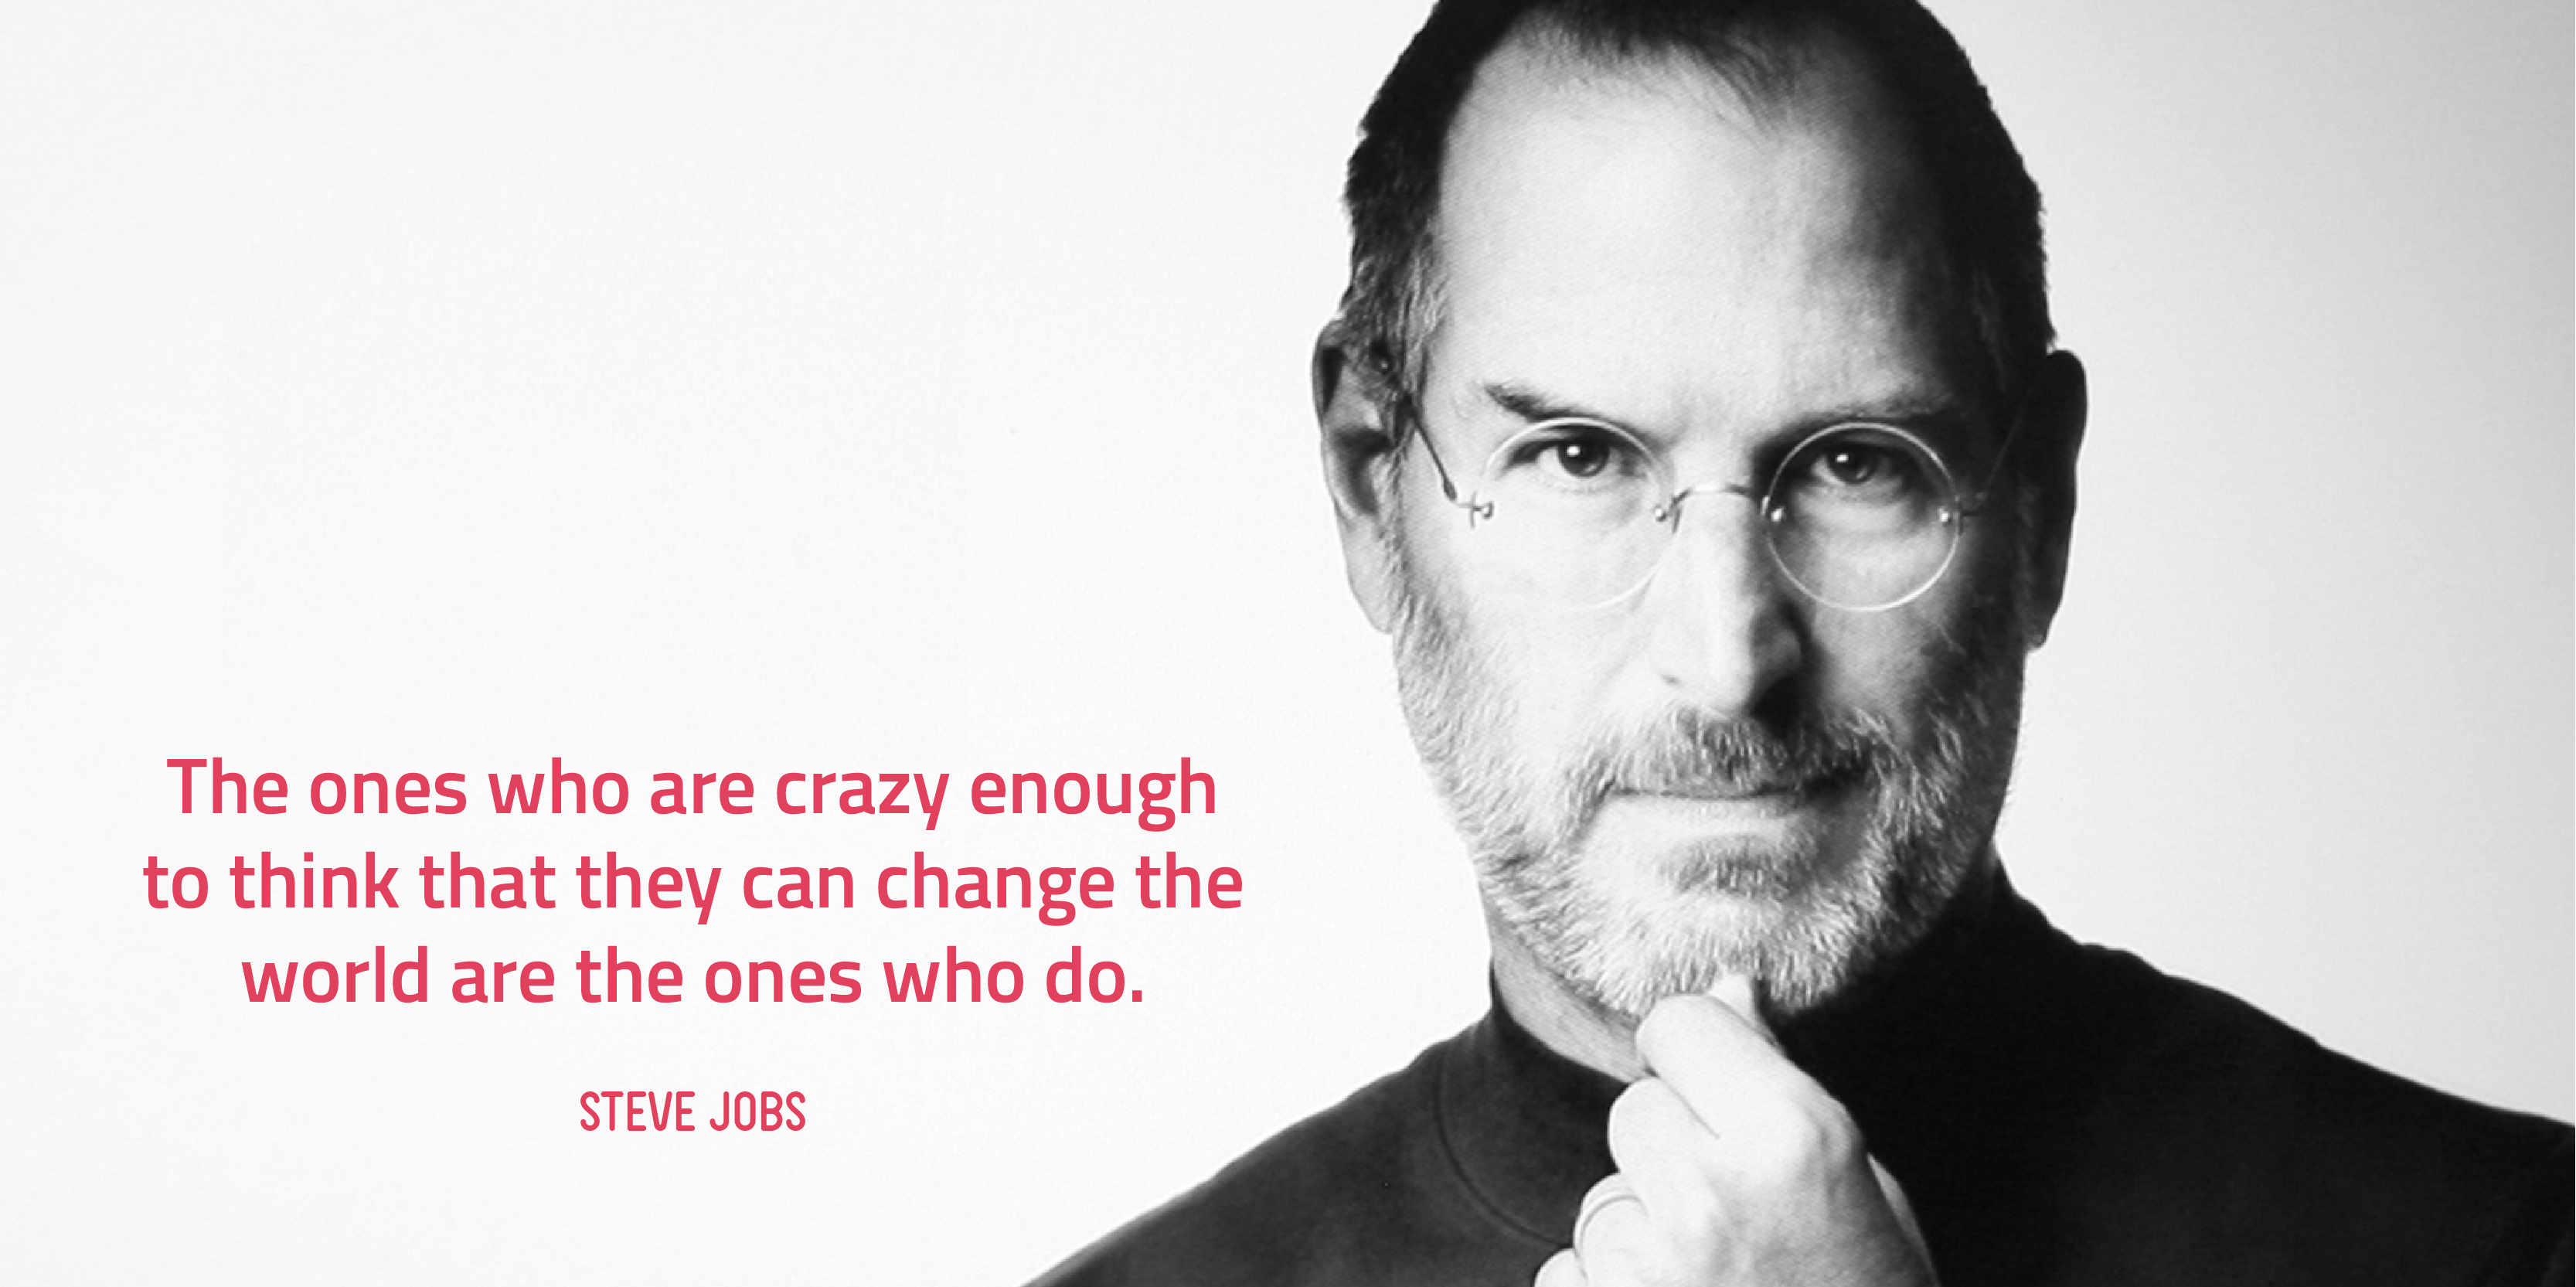 Work Life Balance Quotes Steve Jobs